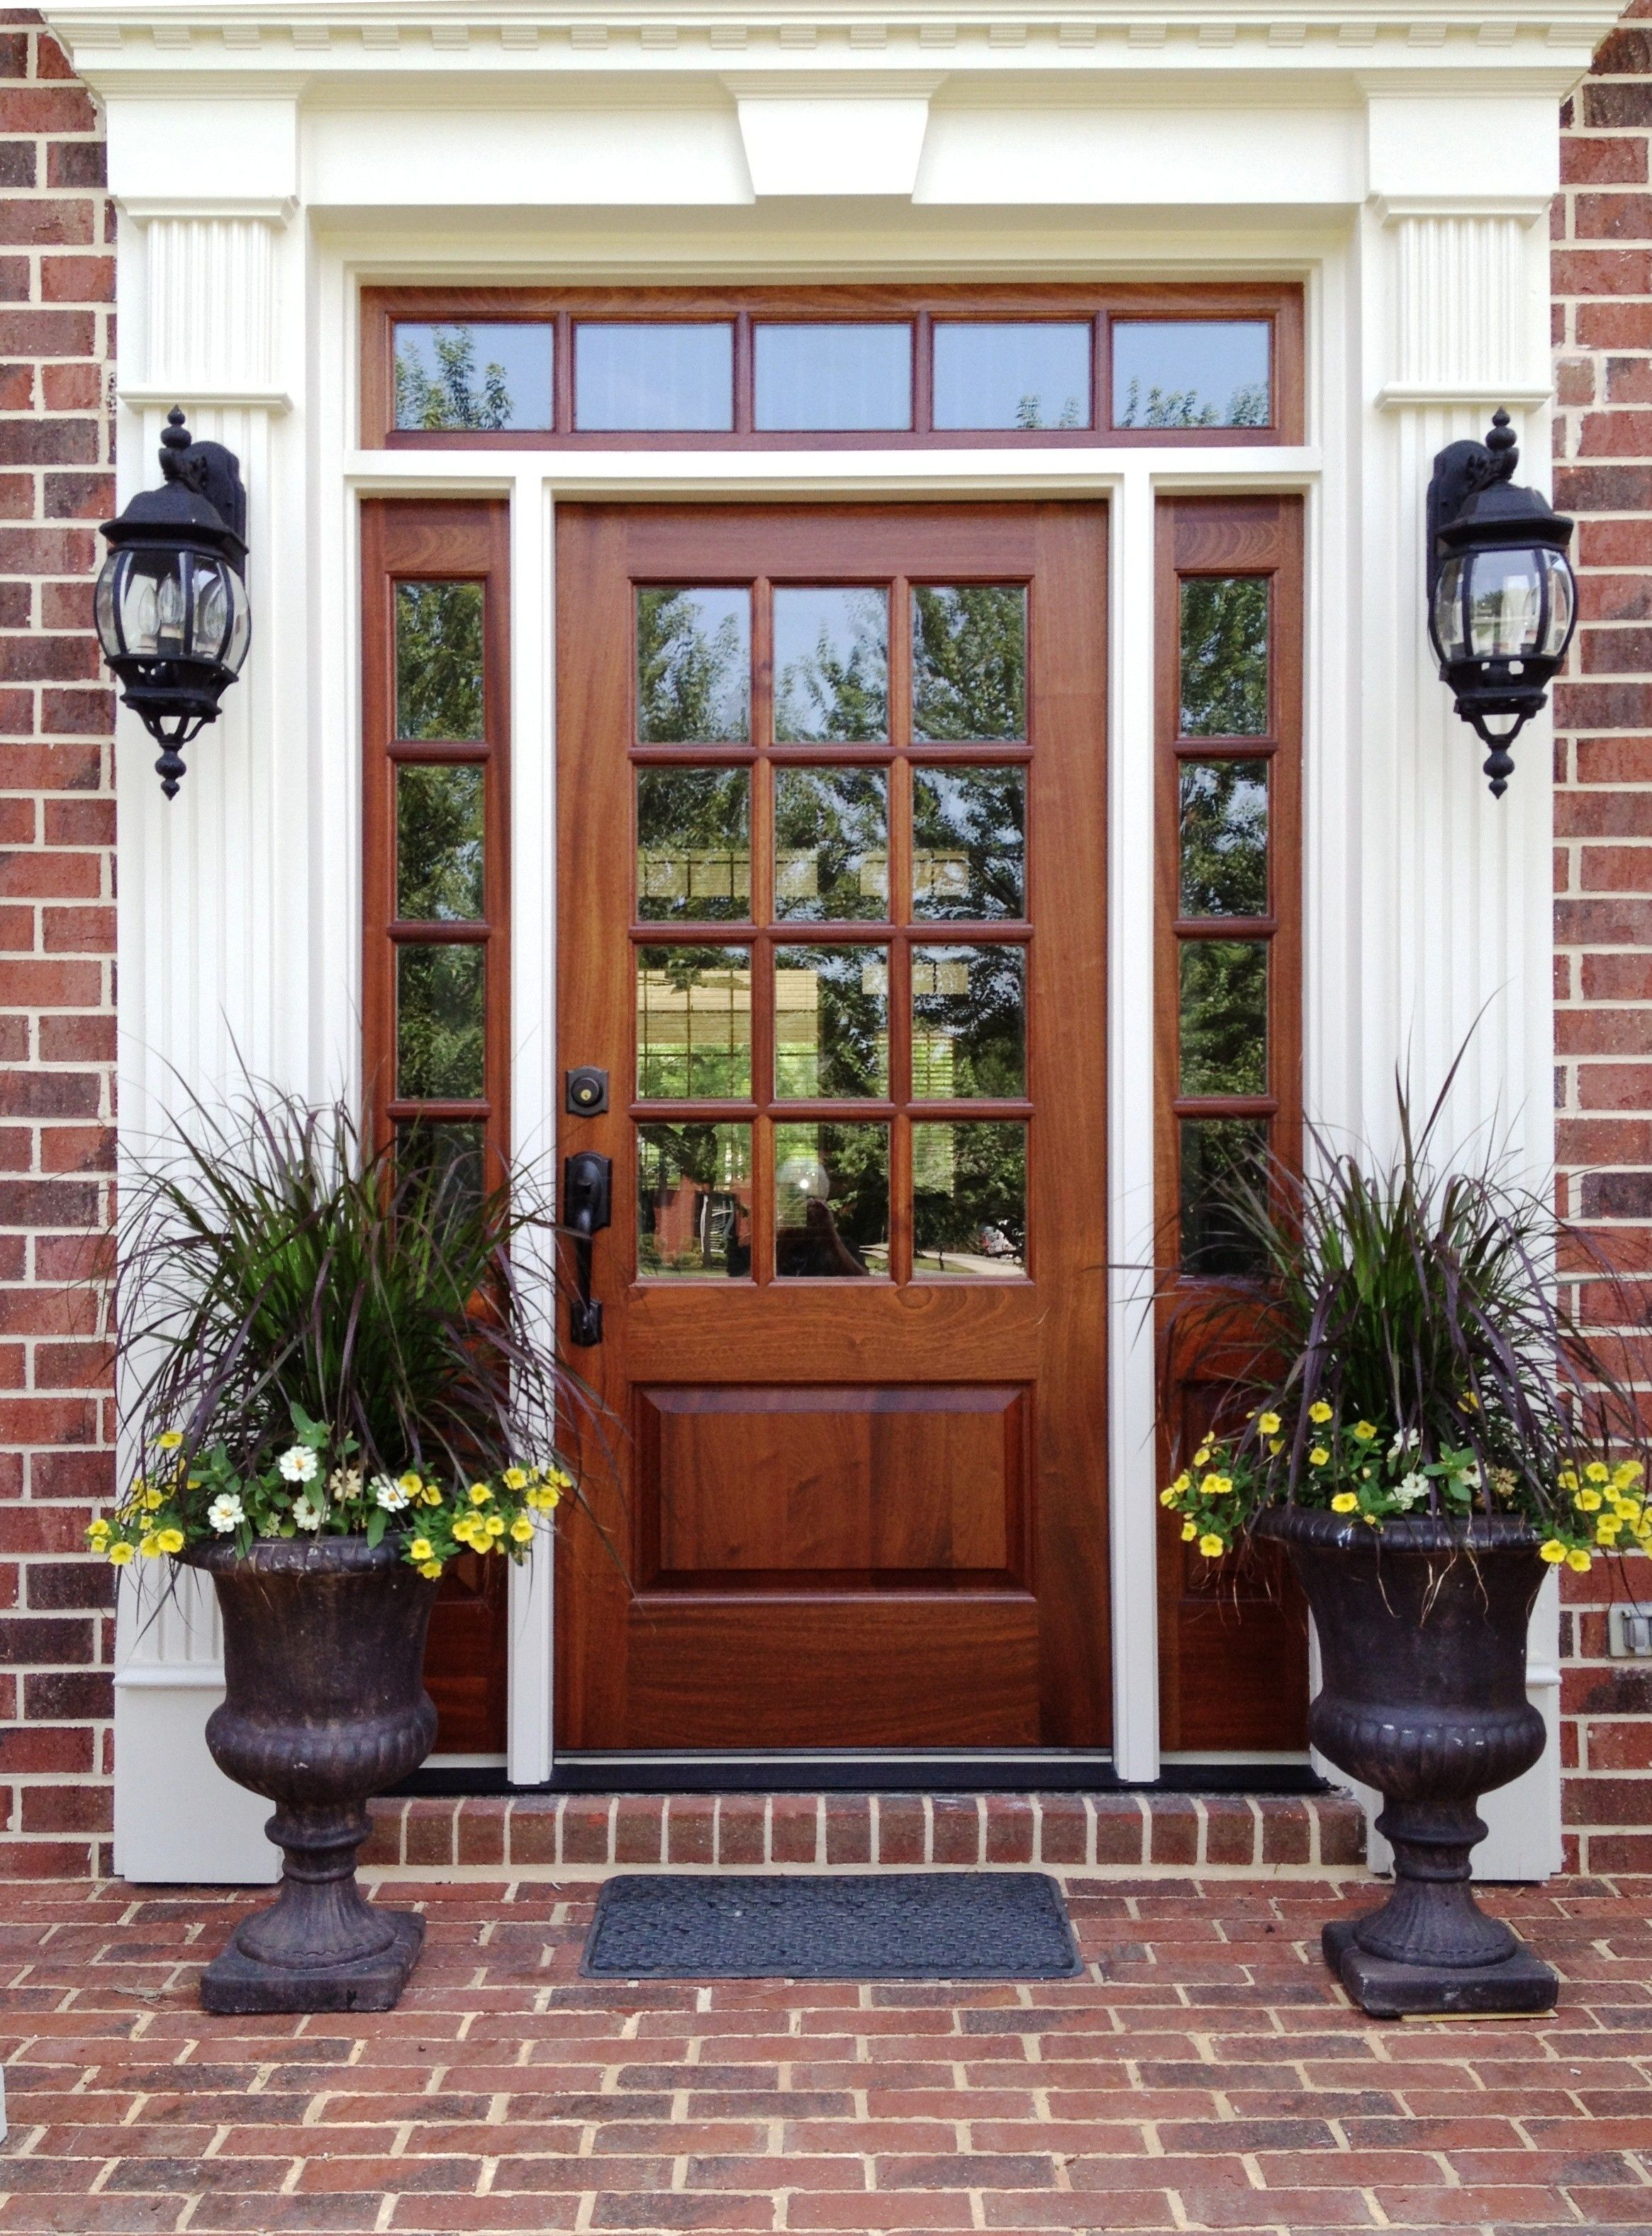 Delicieux Exterior. Tempting Front Door Colors For Brick Houses Change The Old  Opinion. Glossed Brown Front Door Color For Brick House Mixed Antique  Potted Plants